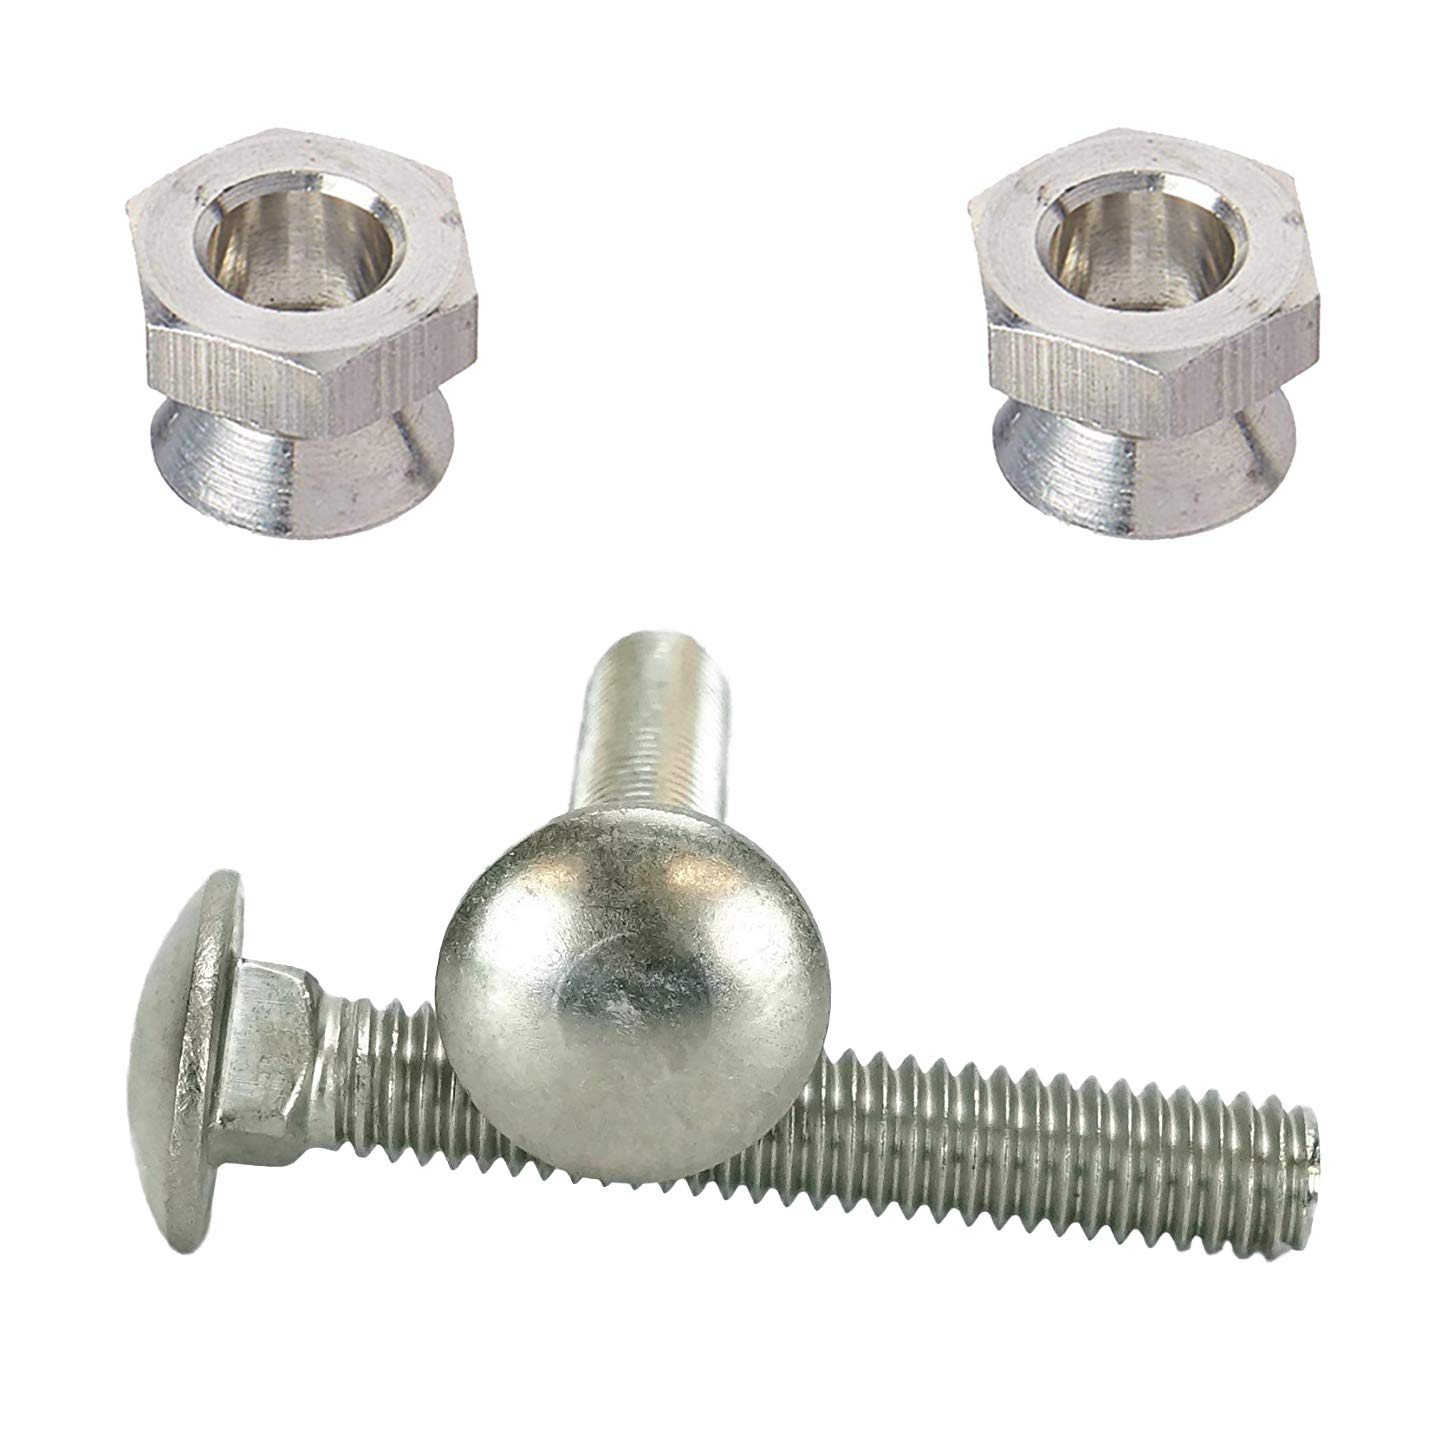 Sign Mounting Hardware Carriage Bolt with Security Nut 5/16-18 X 2 1/2'' for U Channel Post